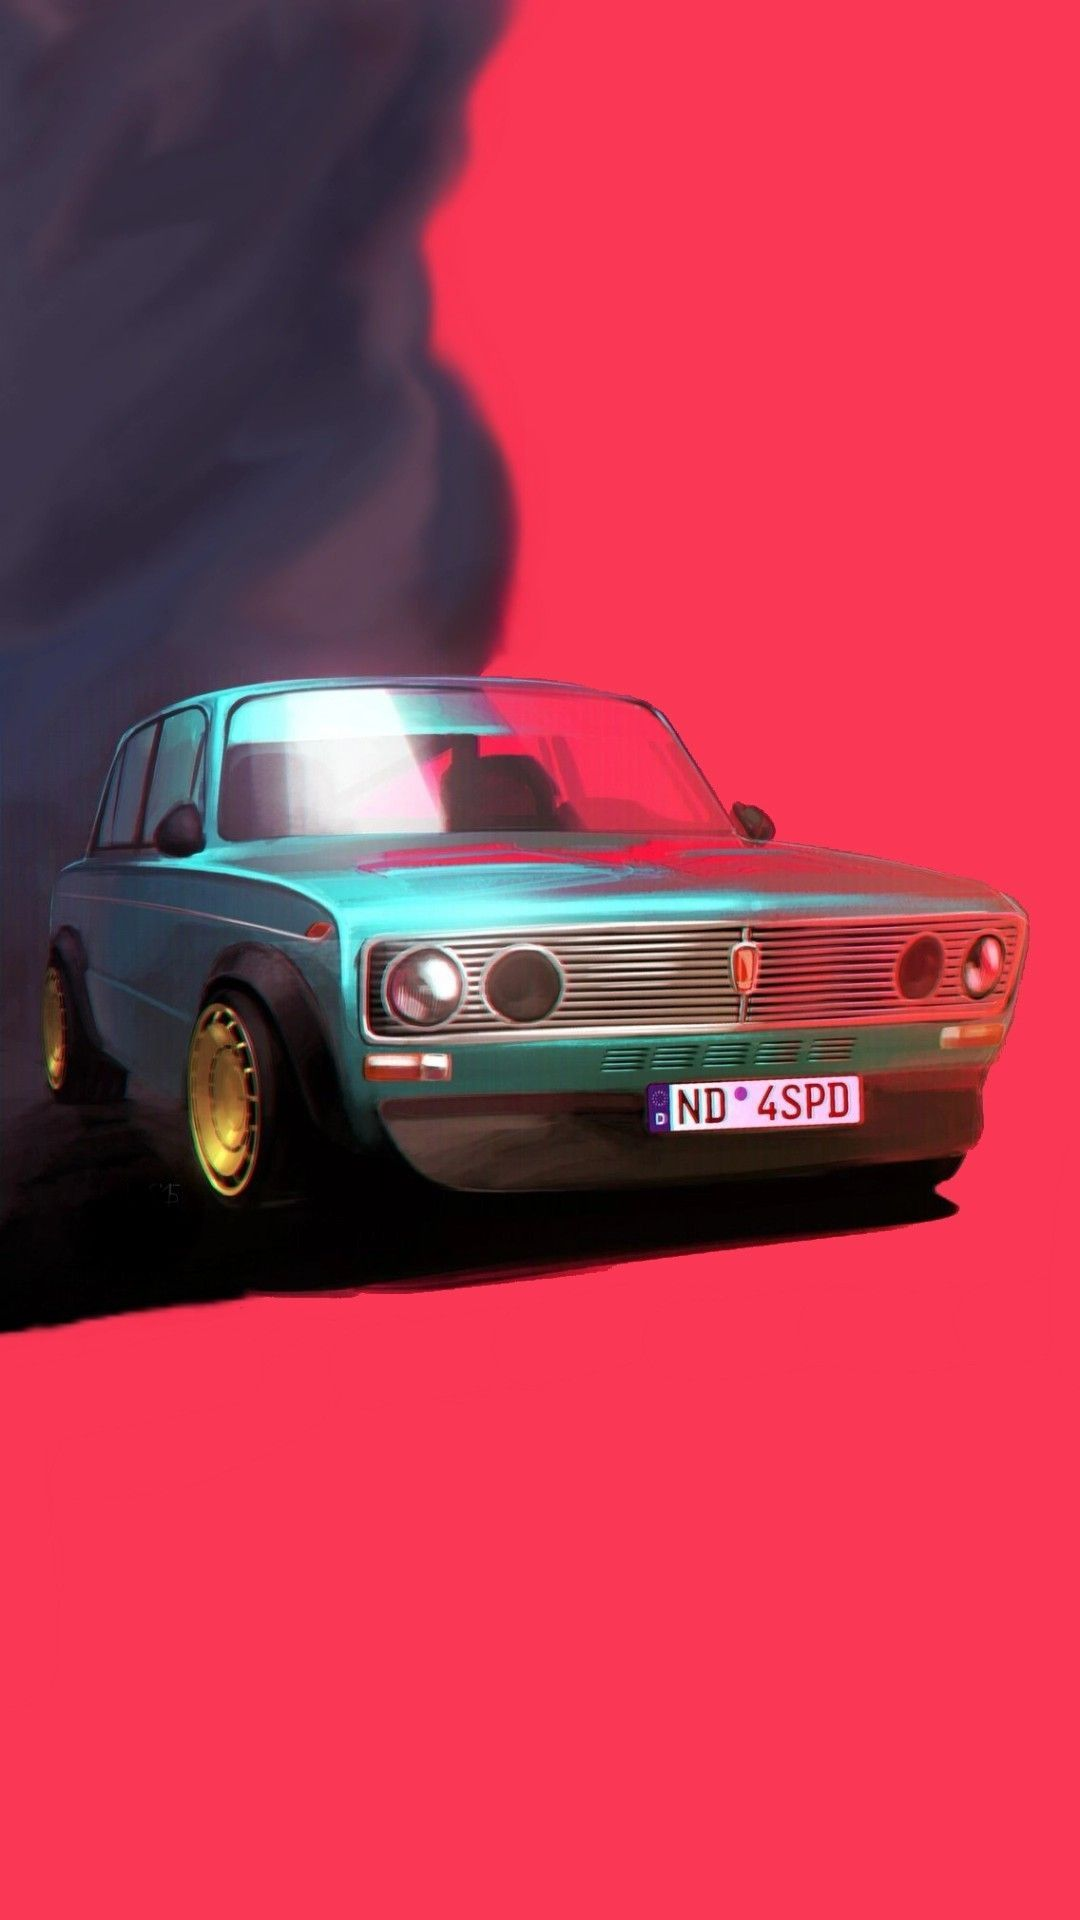 Changing the wallpaper on your iphone or ipad is a simple way to breathe new life into your mobile device. Muchatseble Car Wallpapers Automotive Artwork Car Iphone Wallpaper